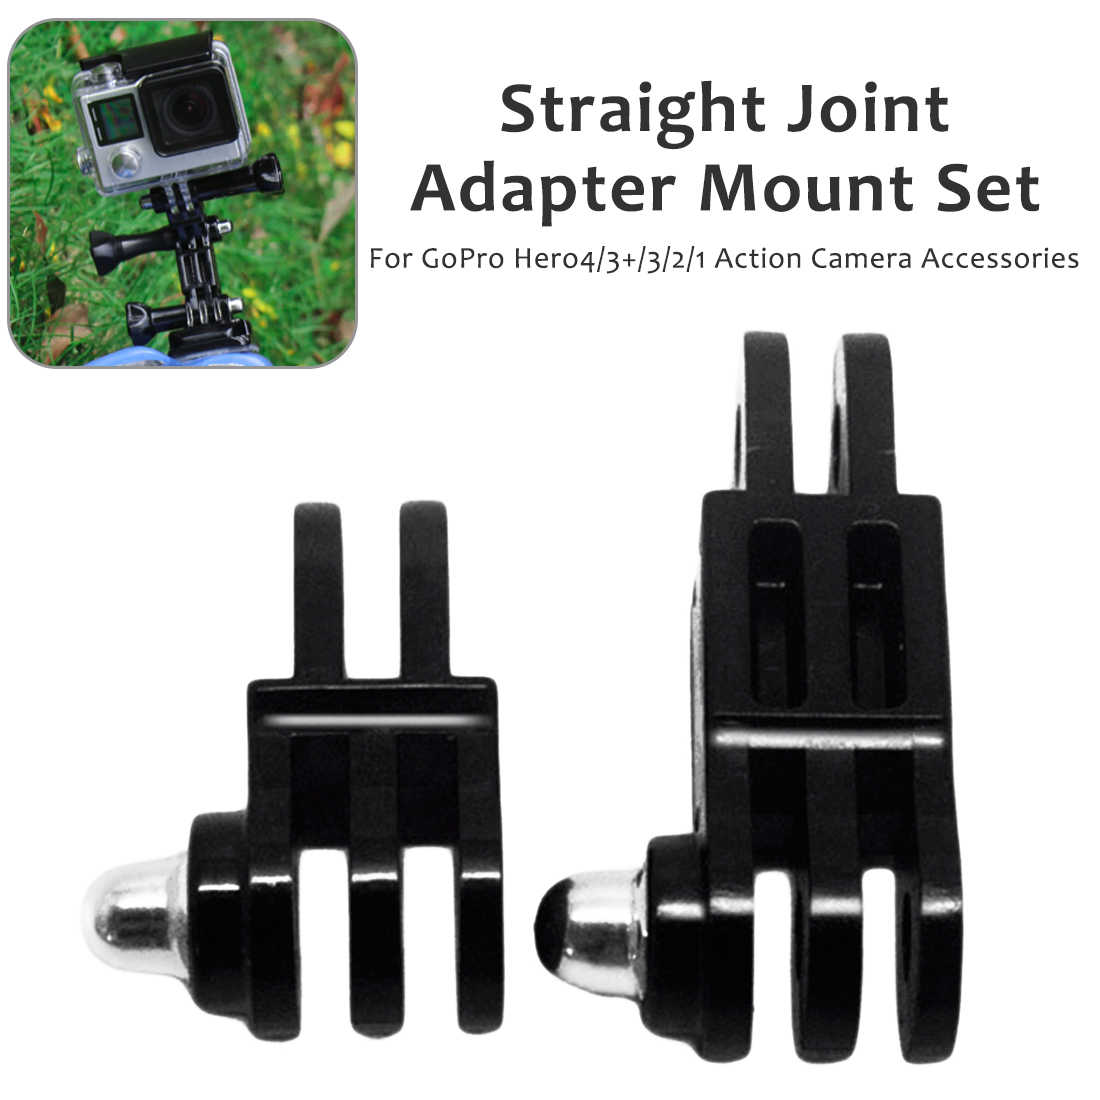 Camera Accessories For Go Pro 5 Accessories Long Short Adjust Arm Straight Joints Mount For Gopro Hero 7 6 5 4 Session 3 Vp113 Sports Camcorder Cases Aliexpress